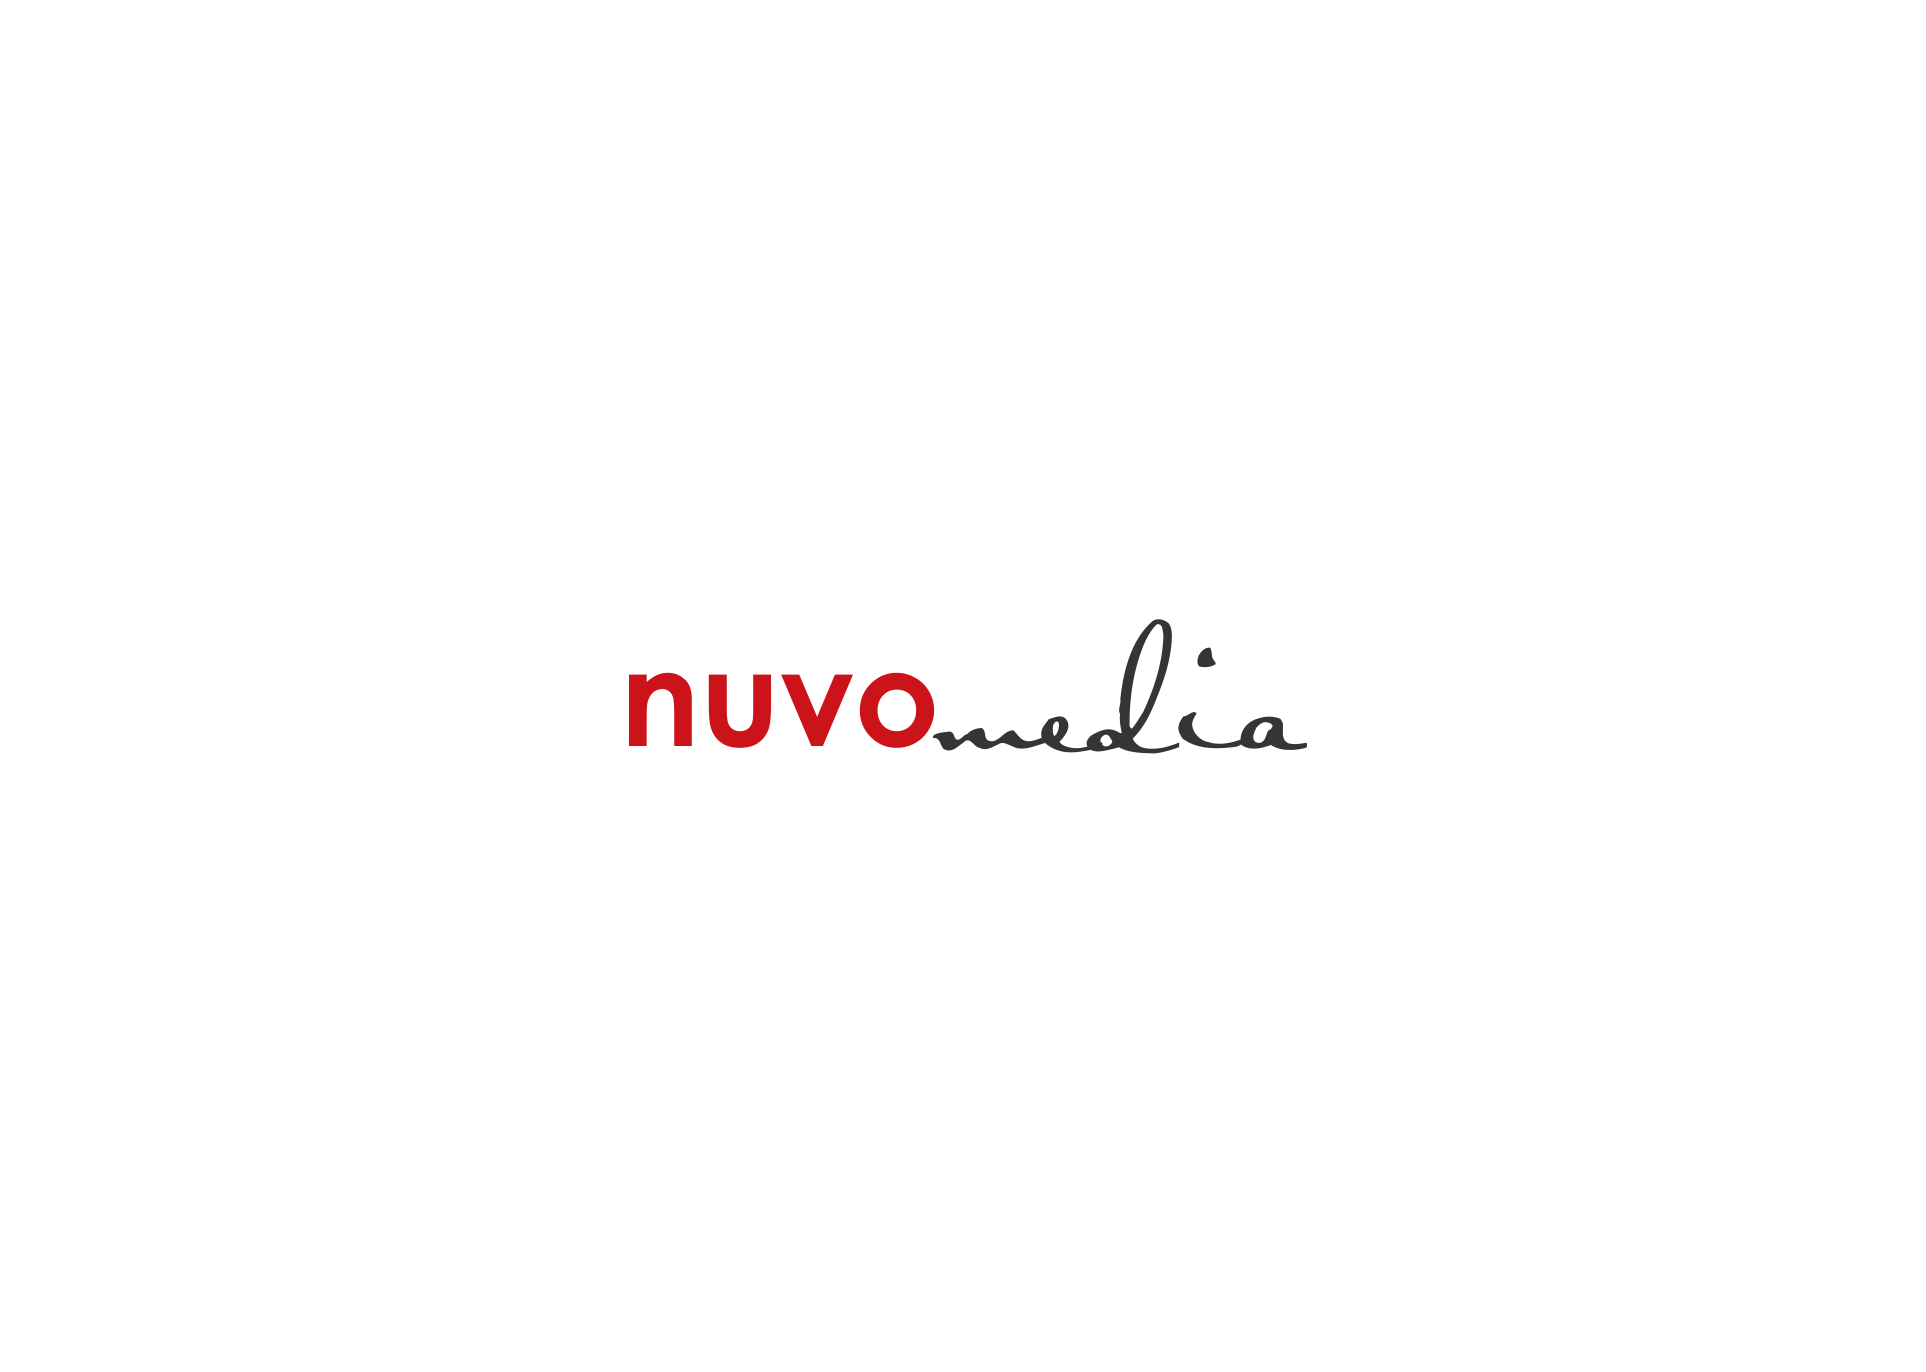 Create the next logo for nuvo media